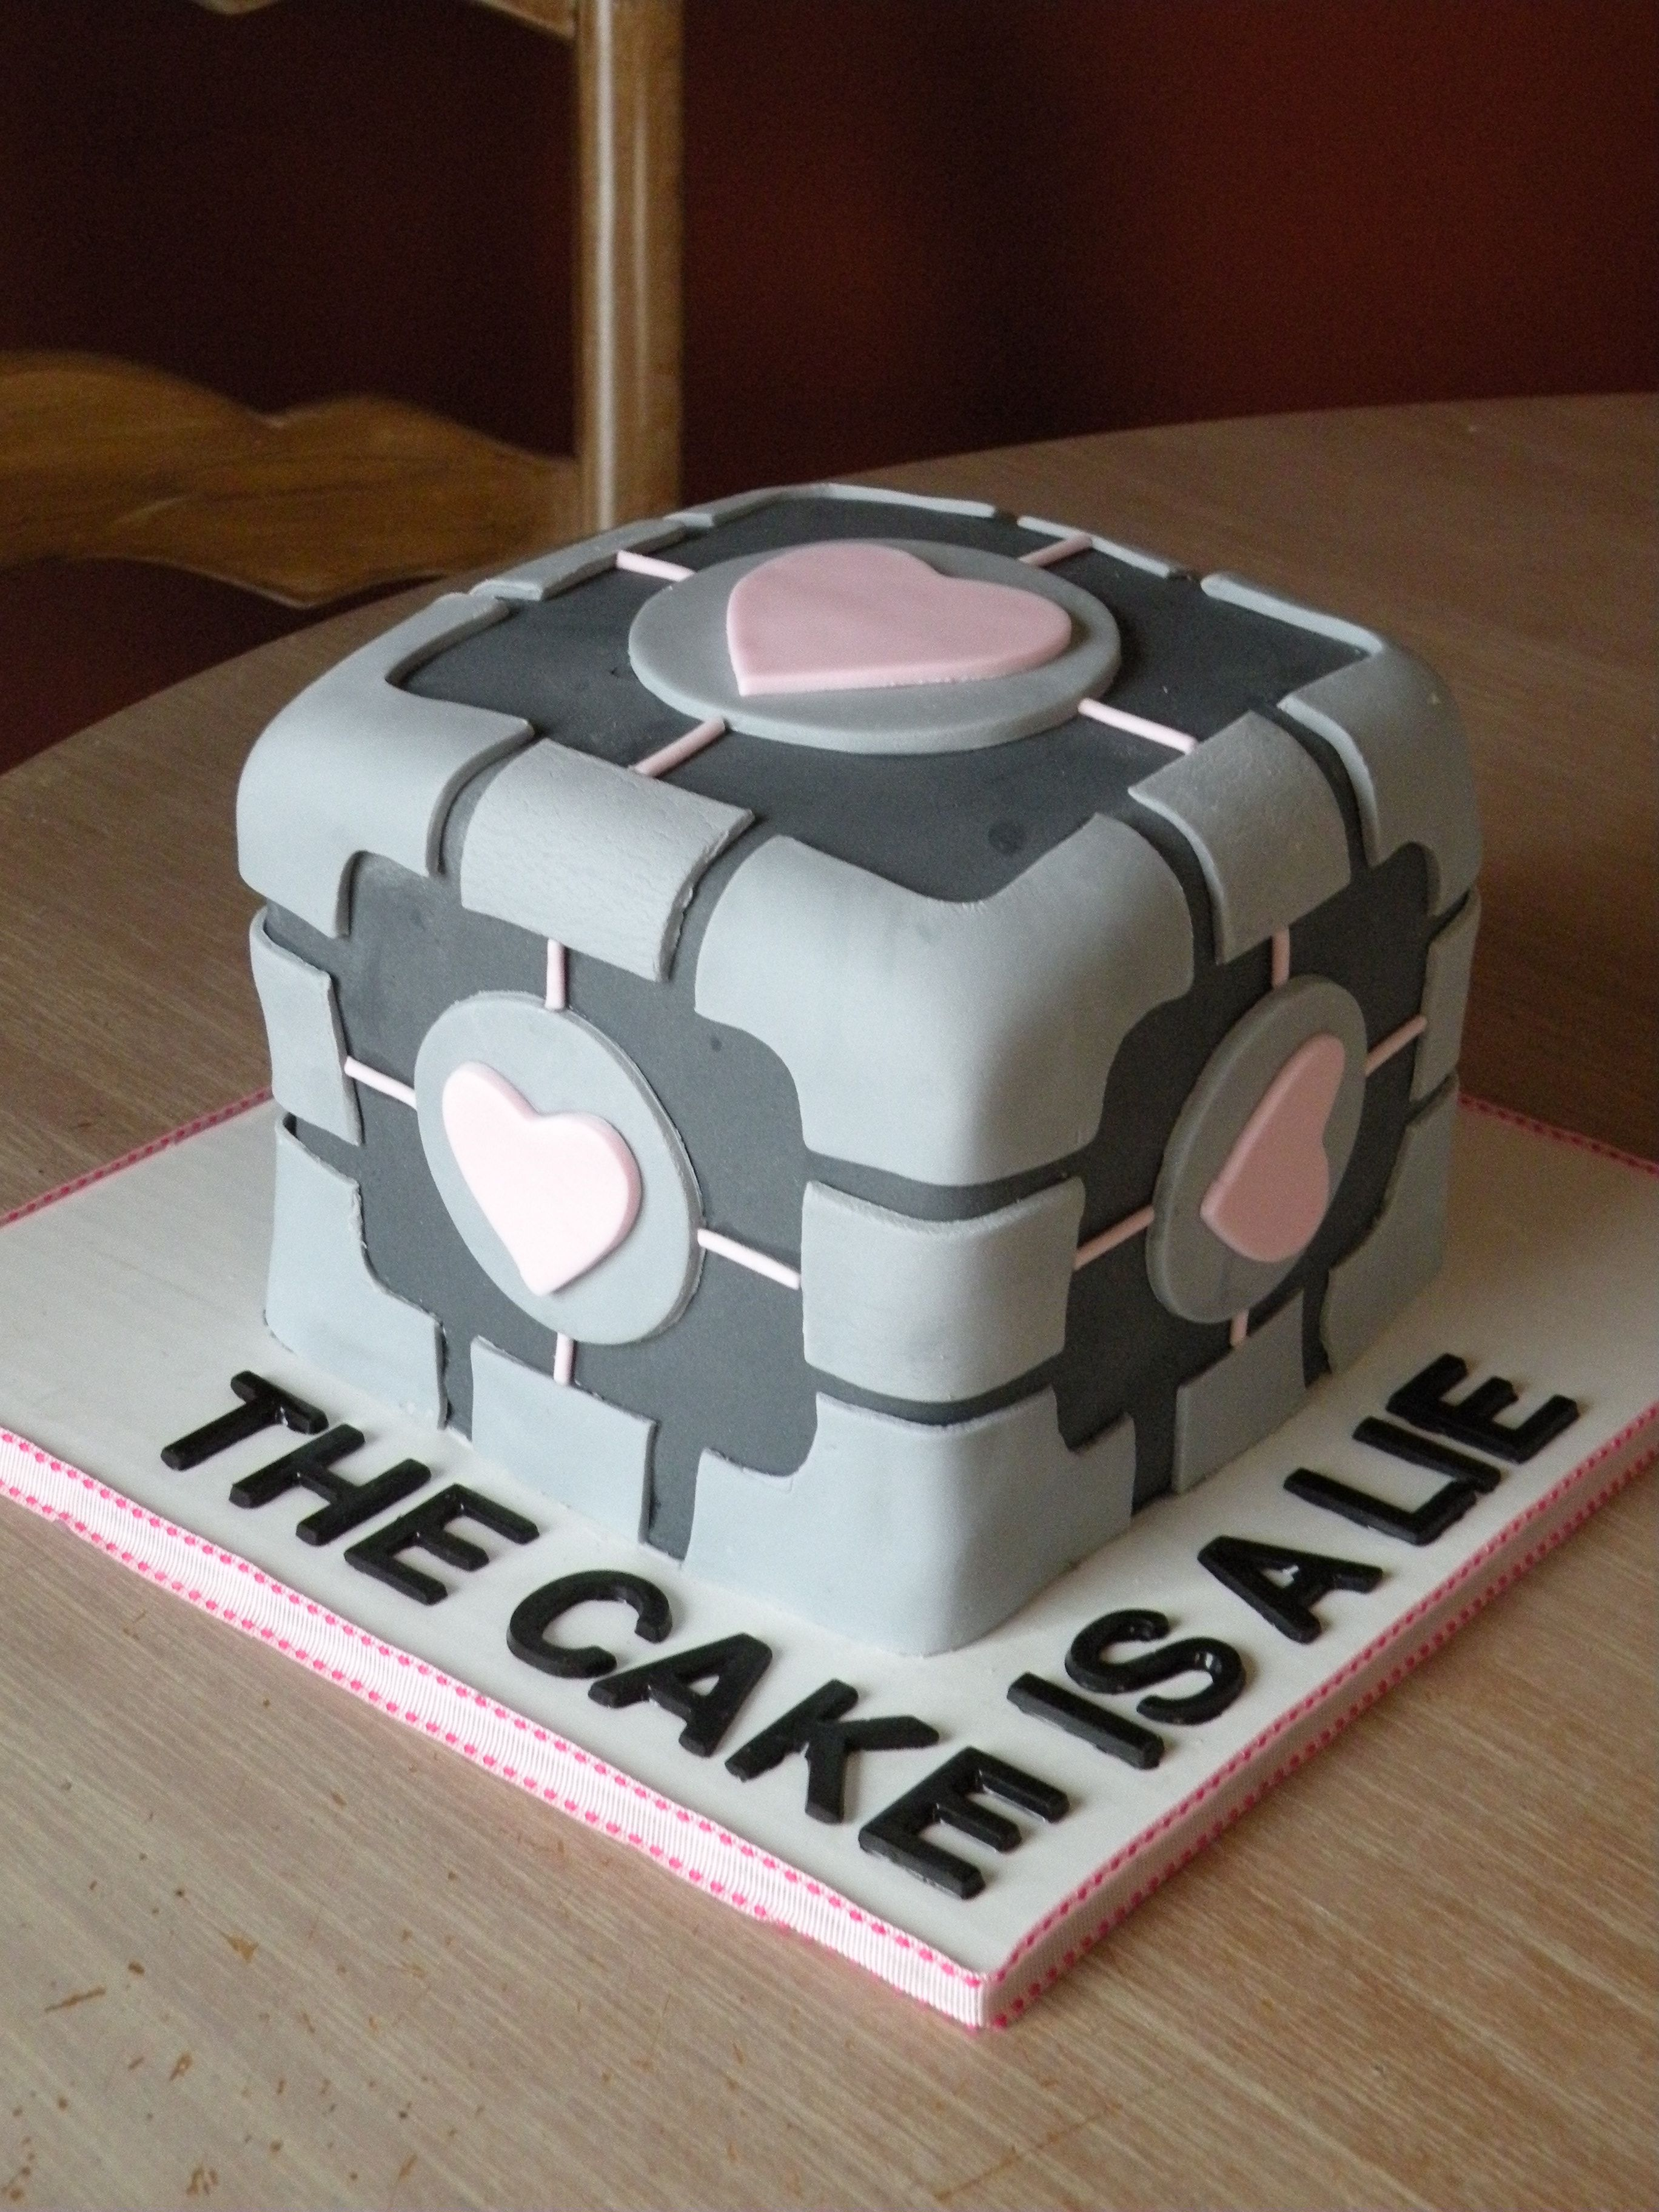 Astonishing Cake Size For Grooms Cake Portal Cake Video Game Cakes Cube Cake Personalised Birthday Cards Veneteletsinfo